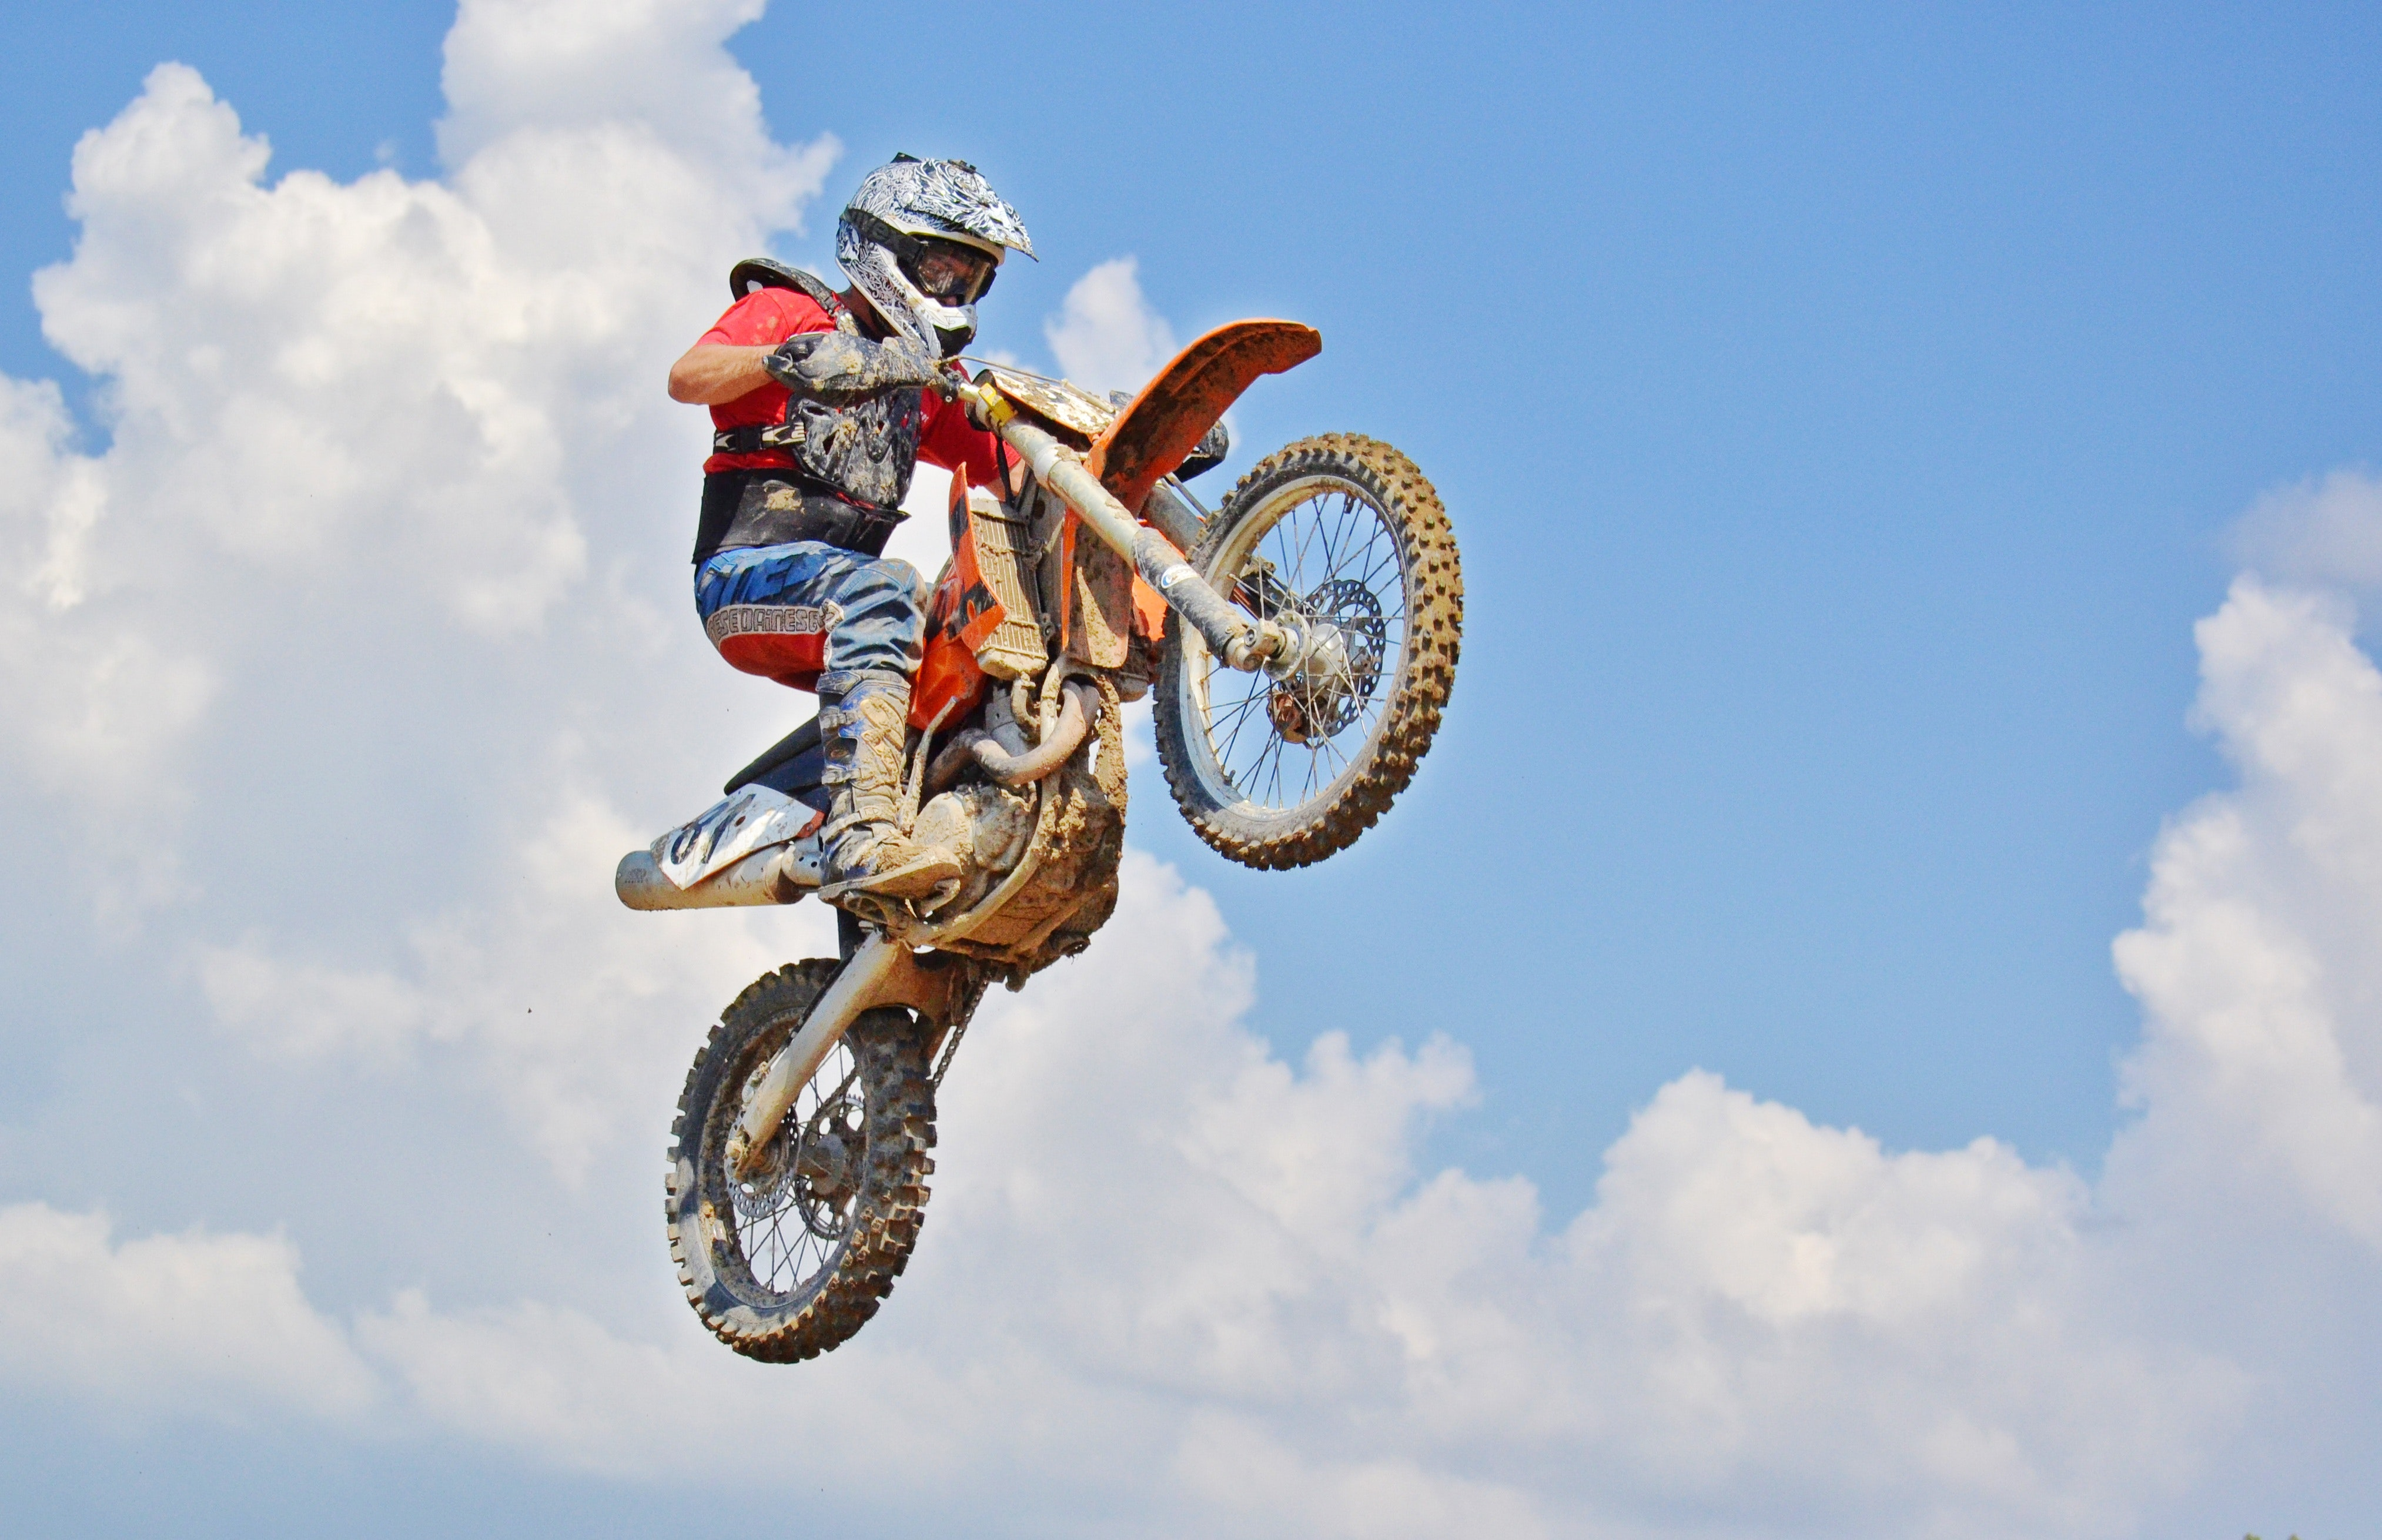 Man on a motocross dirt bike photo